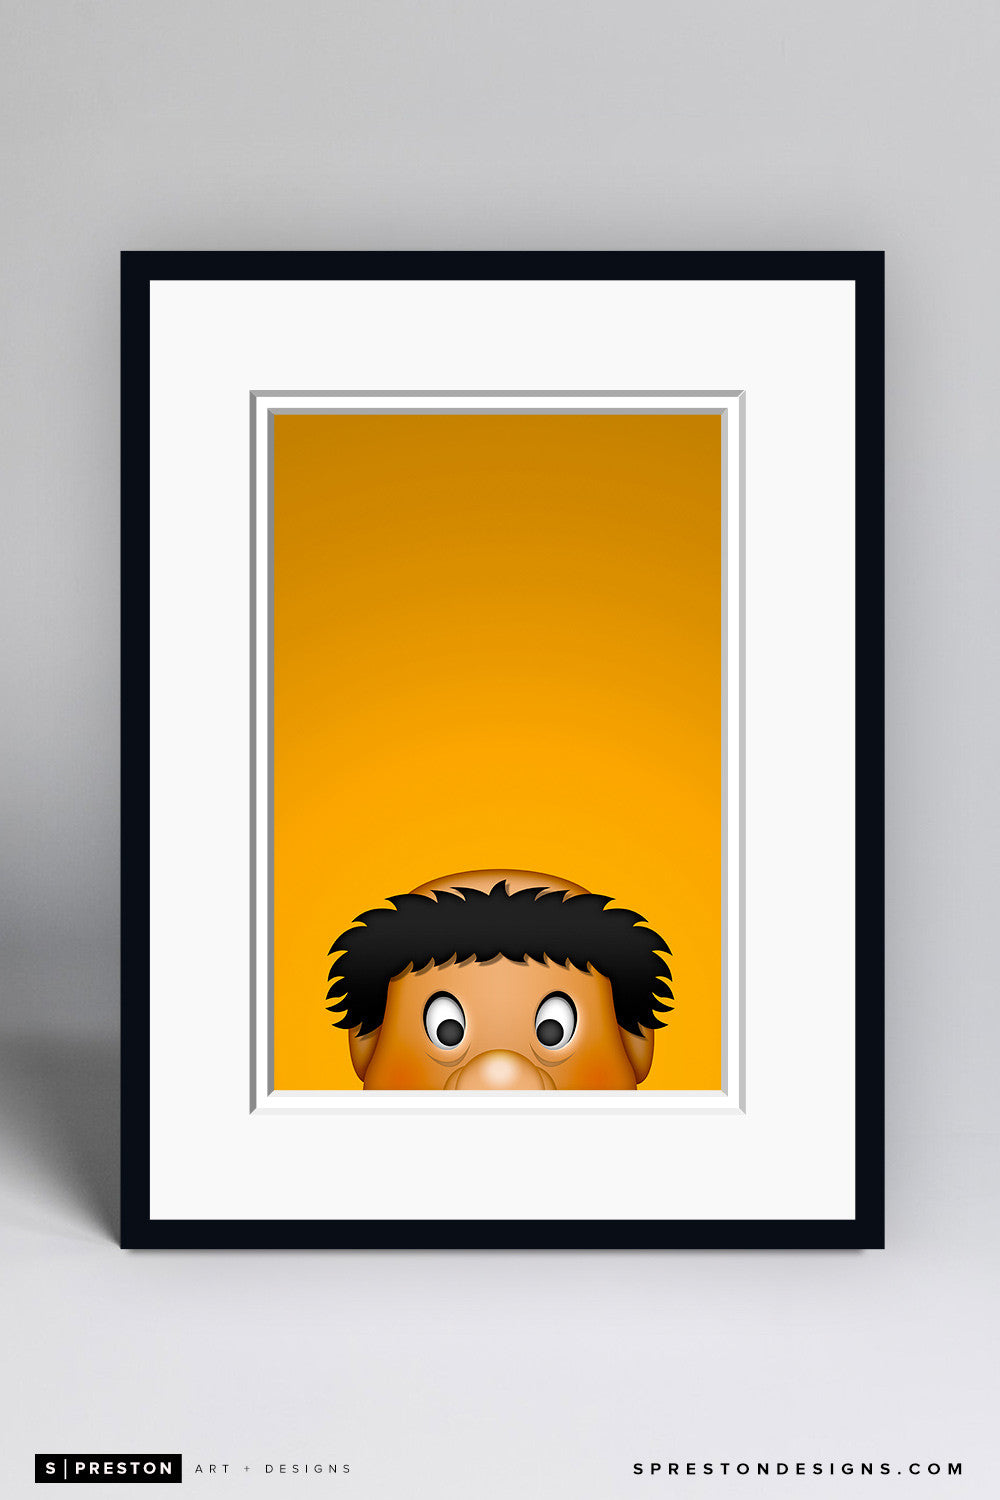 Minimalist Swinging Friar Art Print - San Diego Padres - S. Preston Art + Designs